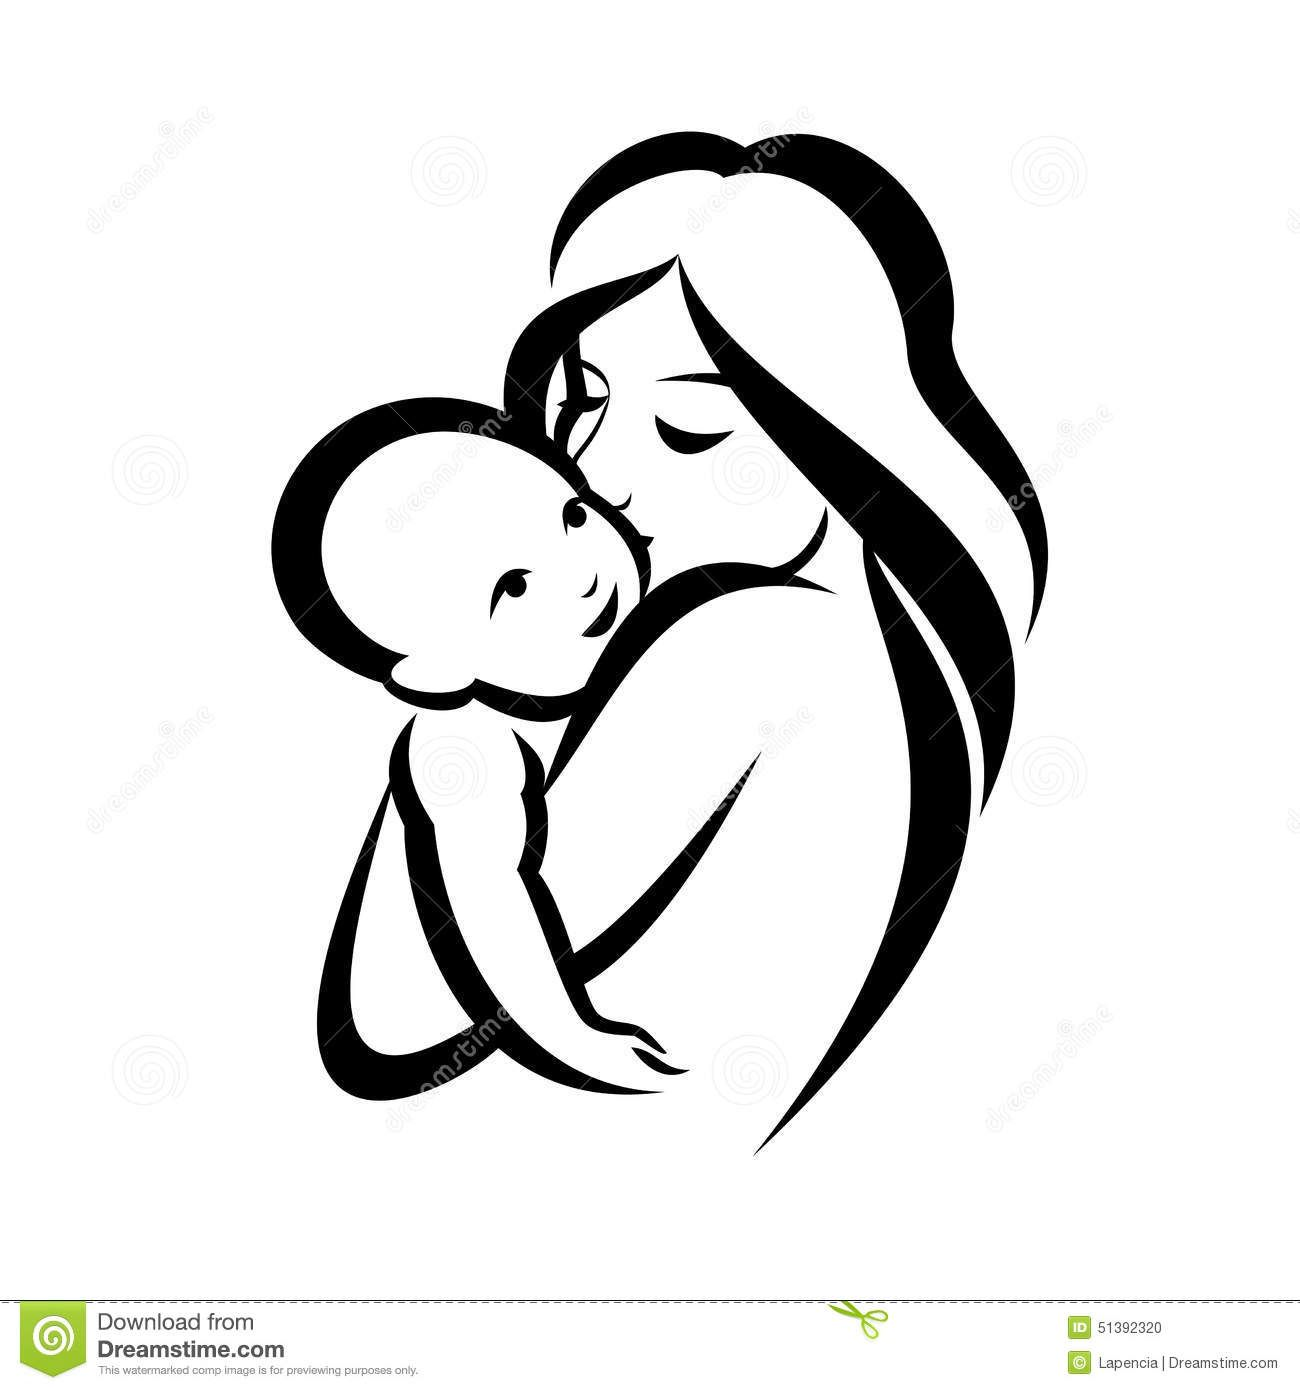 banner stock Mother and symbol download. Vector baby mum